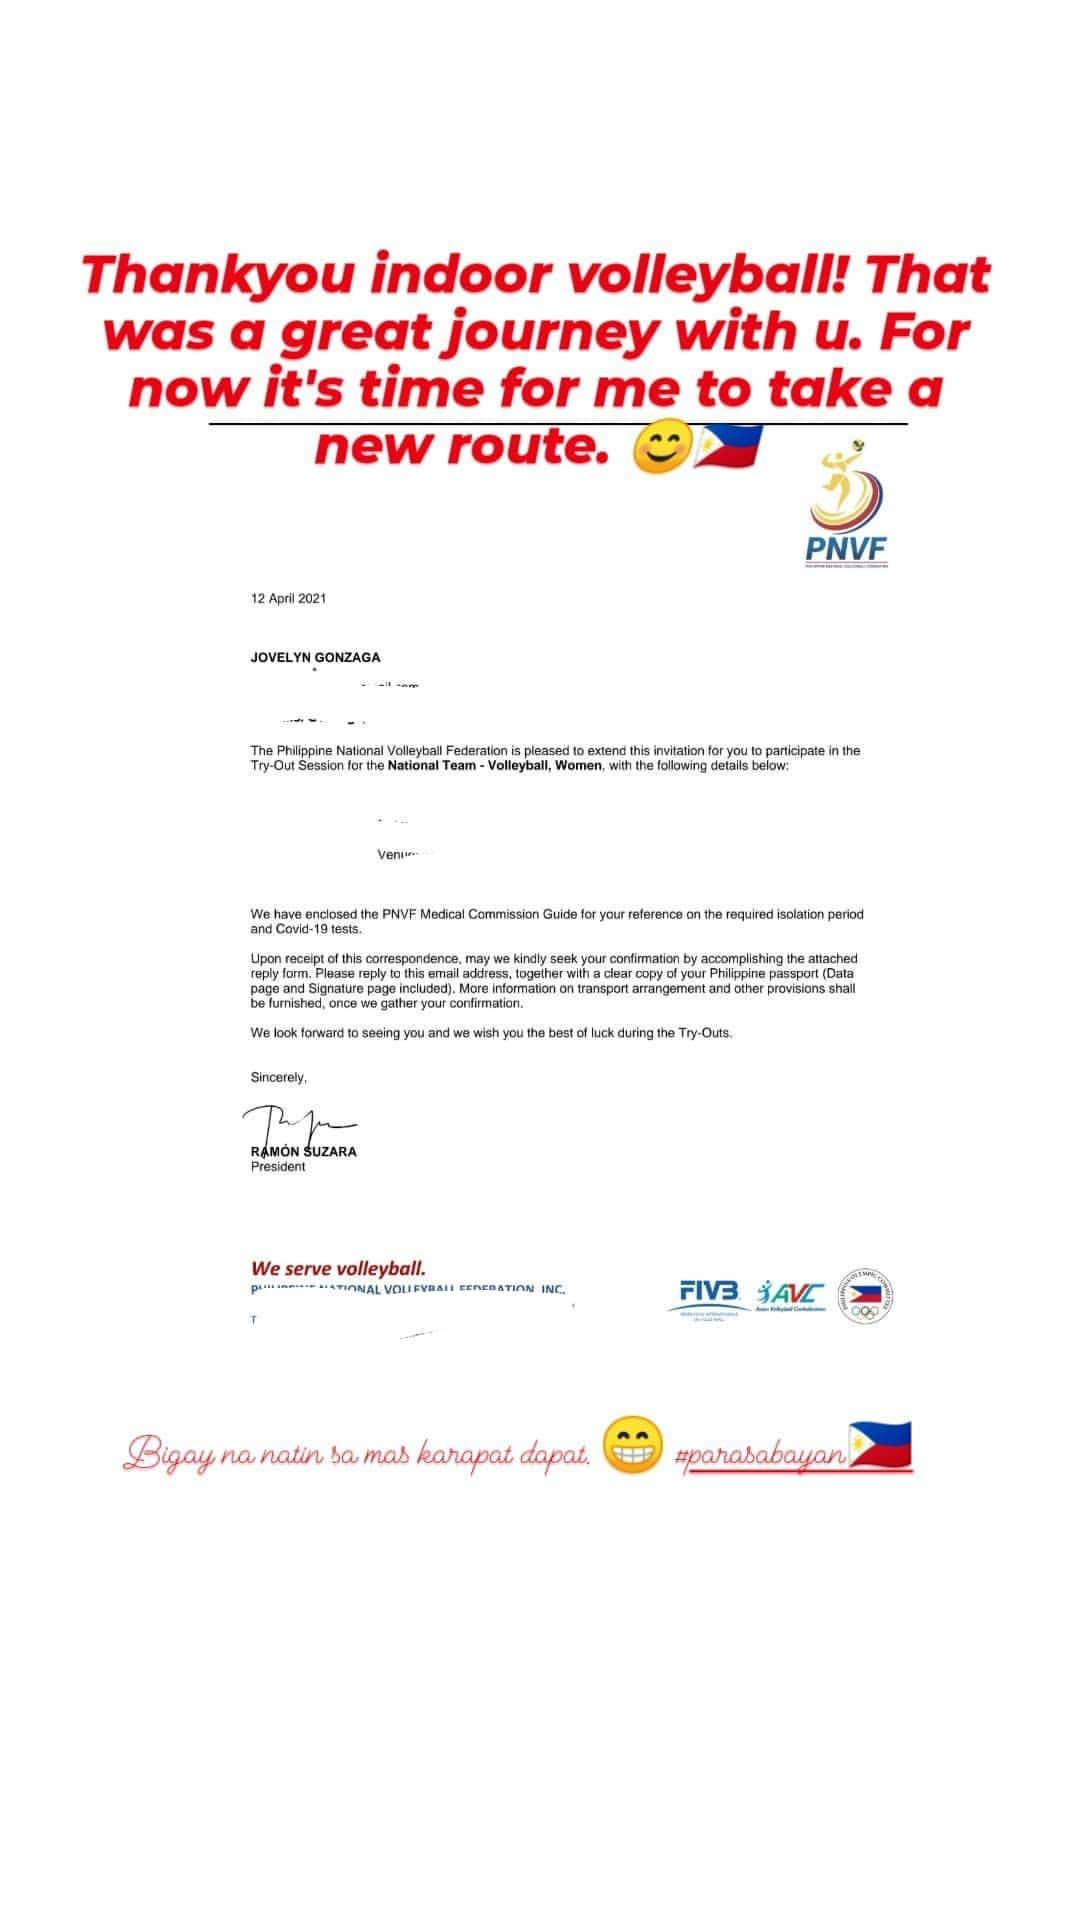 PNWVT-Jovelyn-Gonzaga Jovelyn Gonzaga forgoing spot in indoor volley NT News PVL Volleyball  - philippine sports news